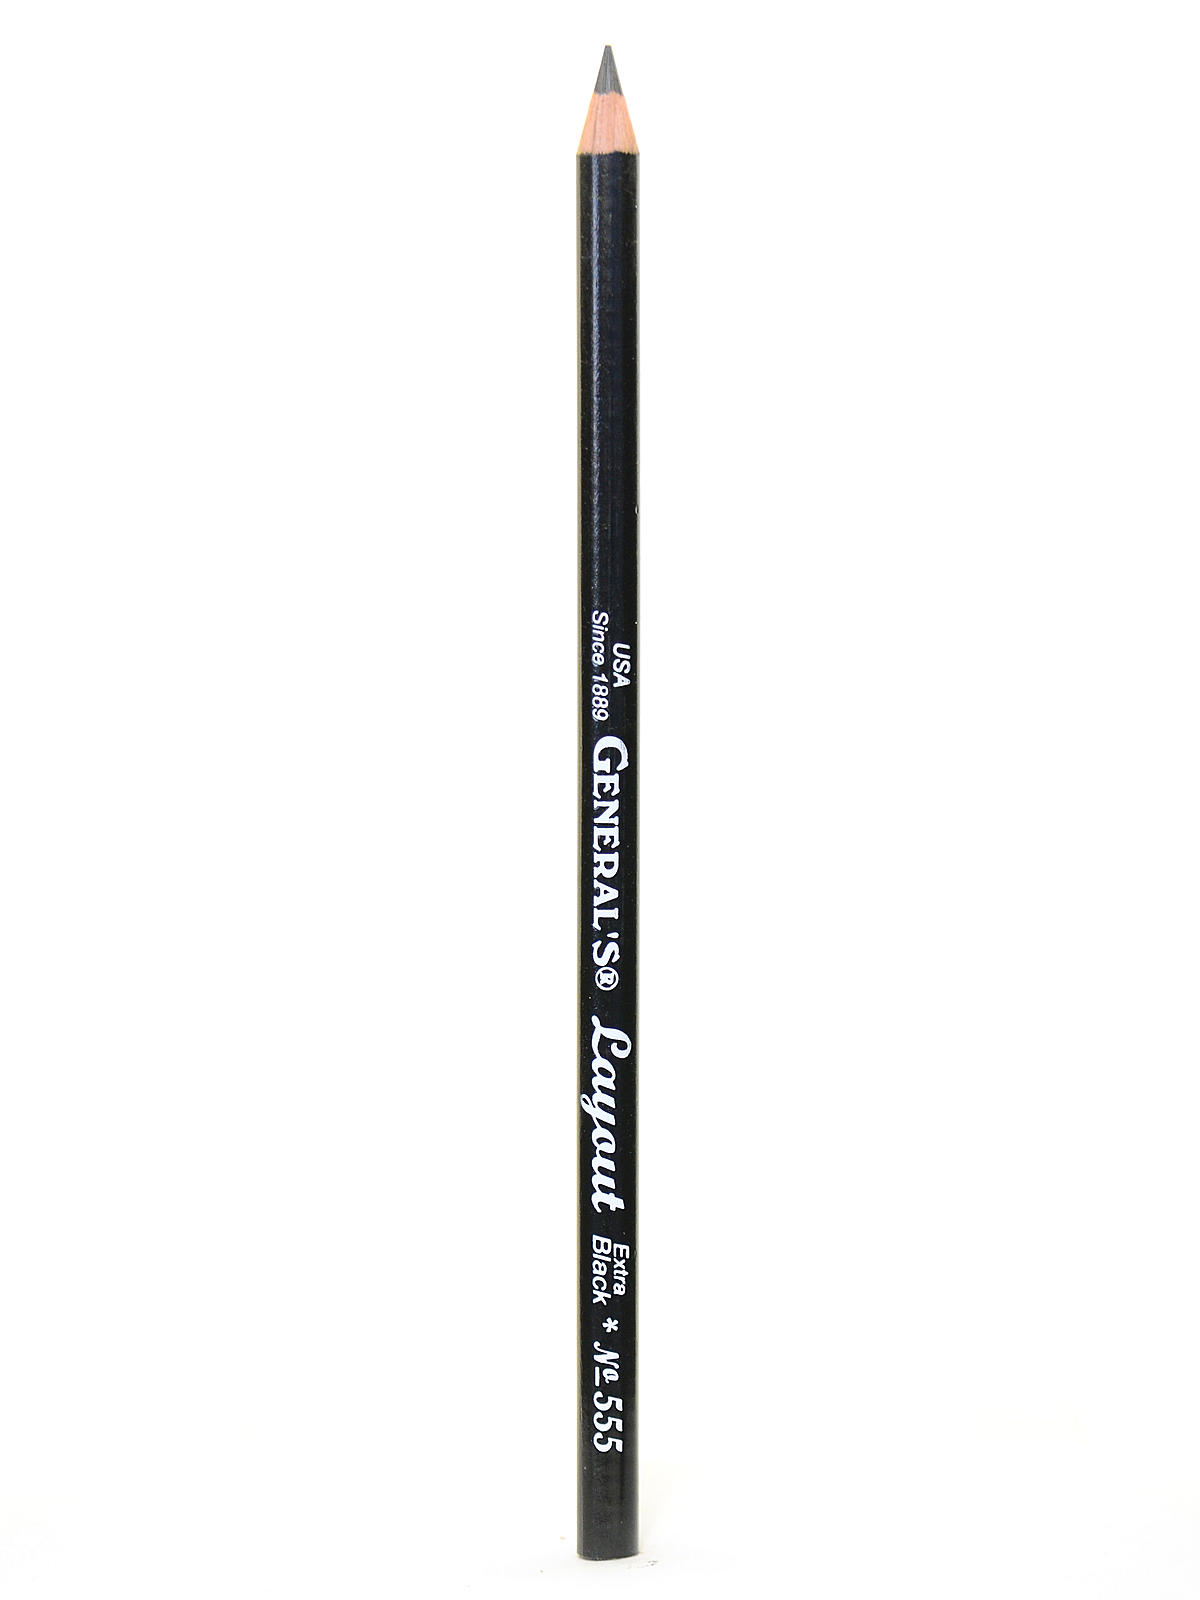 555 Series Layout Pencil